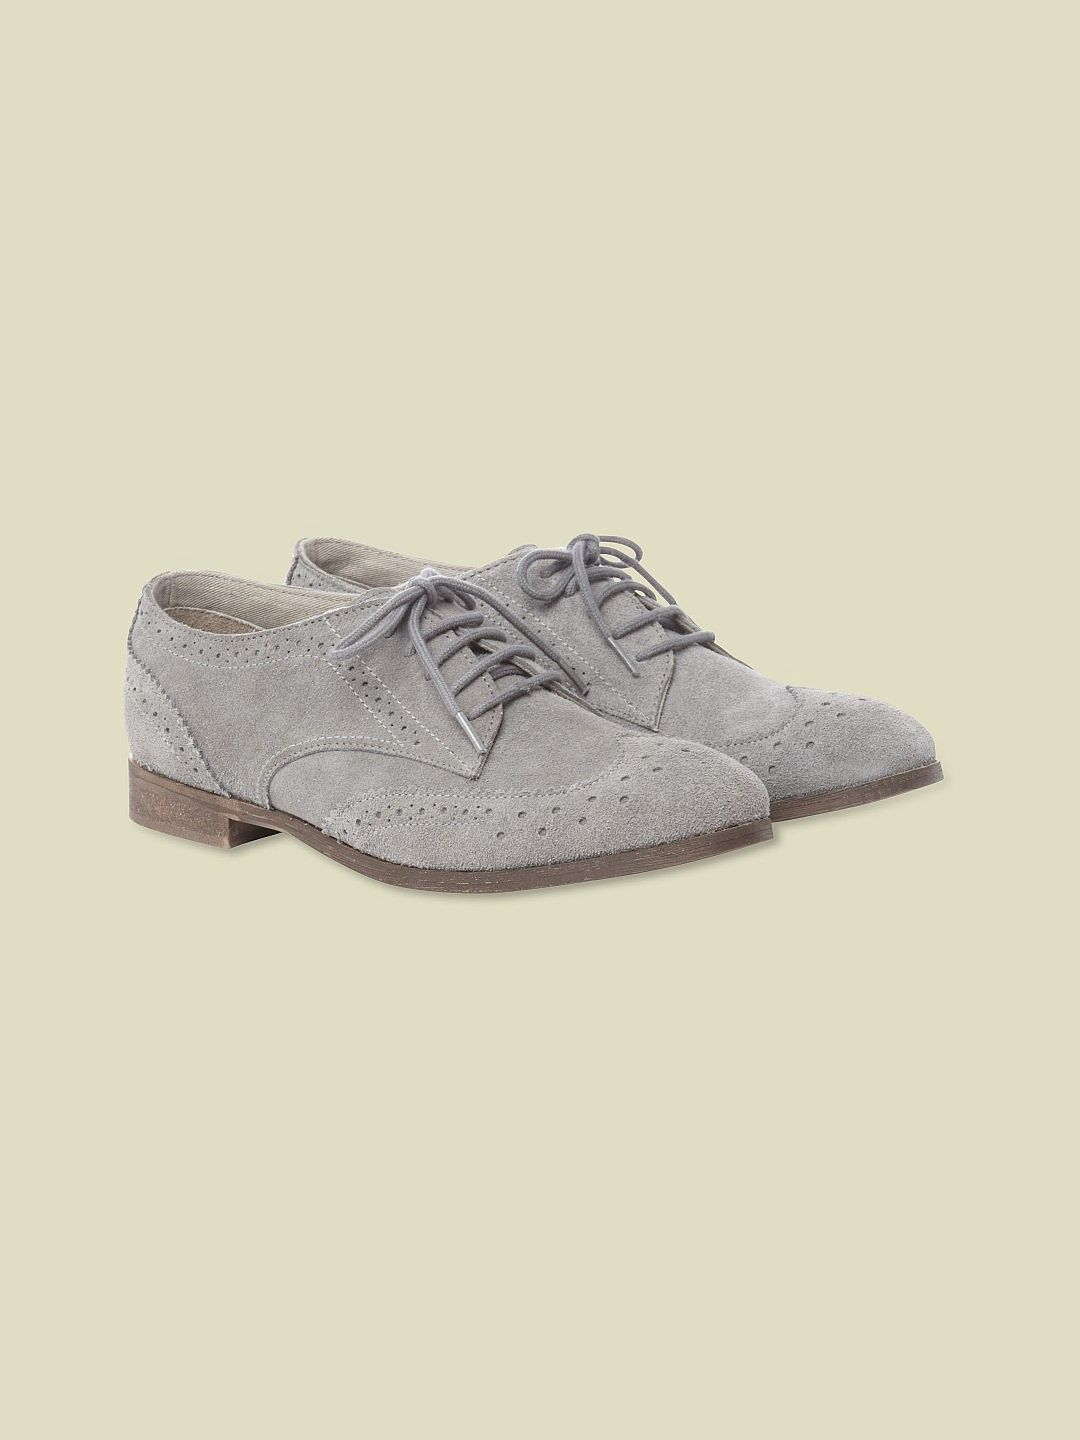 LACE UP BROGUE | shoes & sandals | White Stuff pretty little shoes #makesmehappy @White Stuff UK